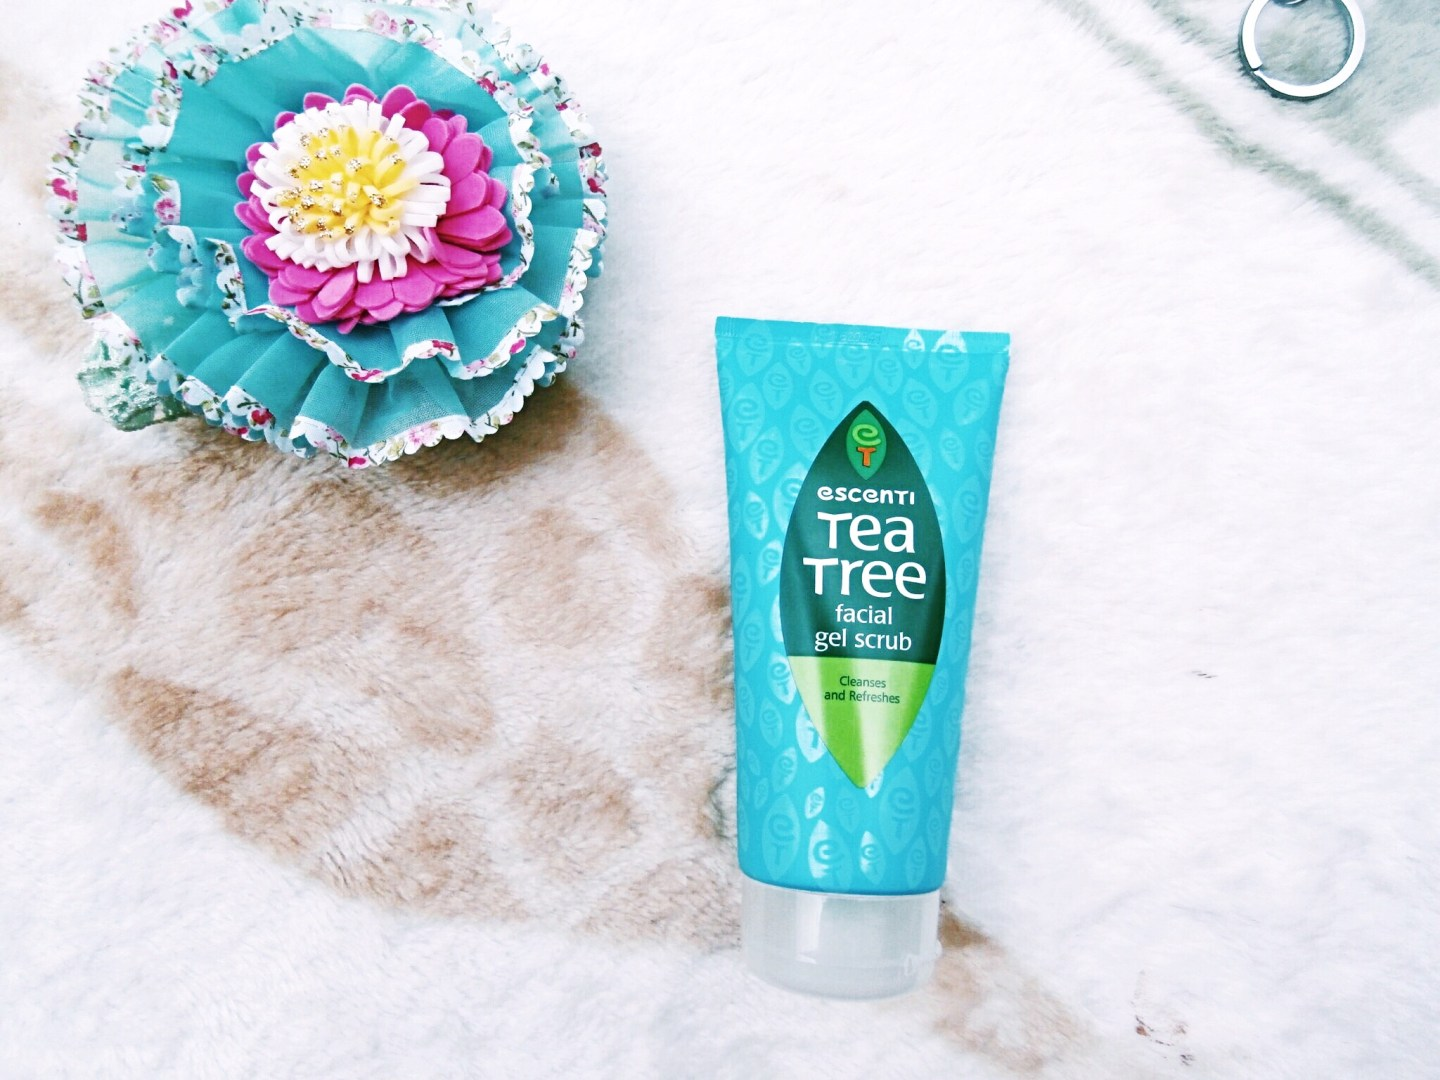 ESCENTI TEA TREE FACIAL GEL SCRUB REVIEW